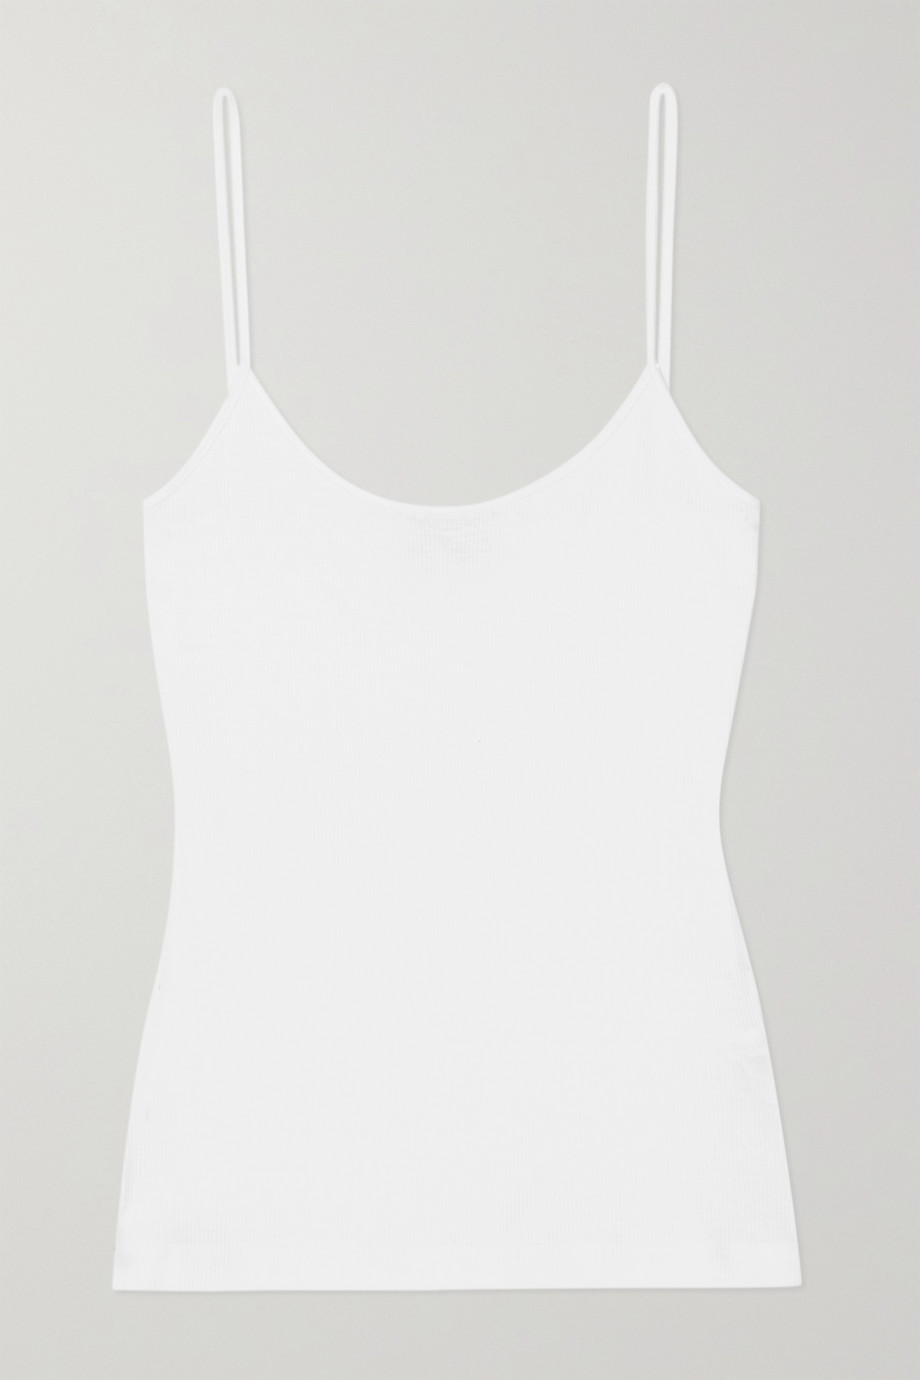 NINETY PERCENT + NET SUSTAIN ribbed organic cotton-jersey camisole